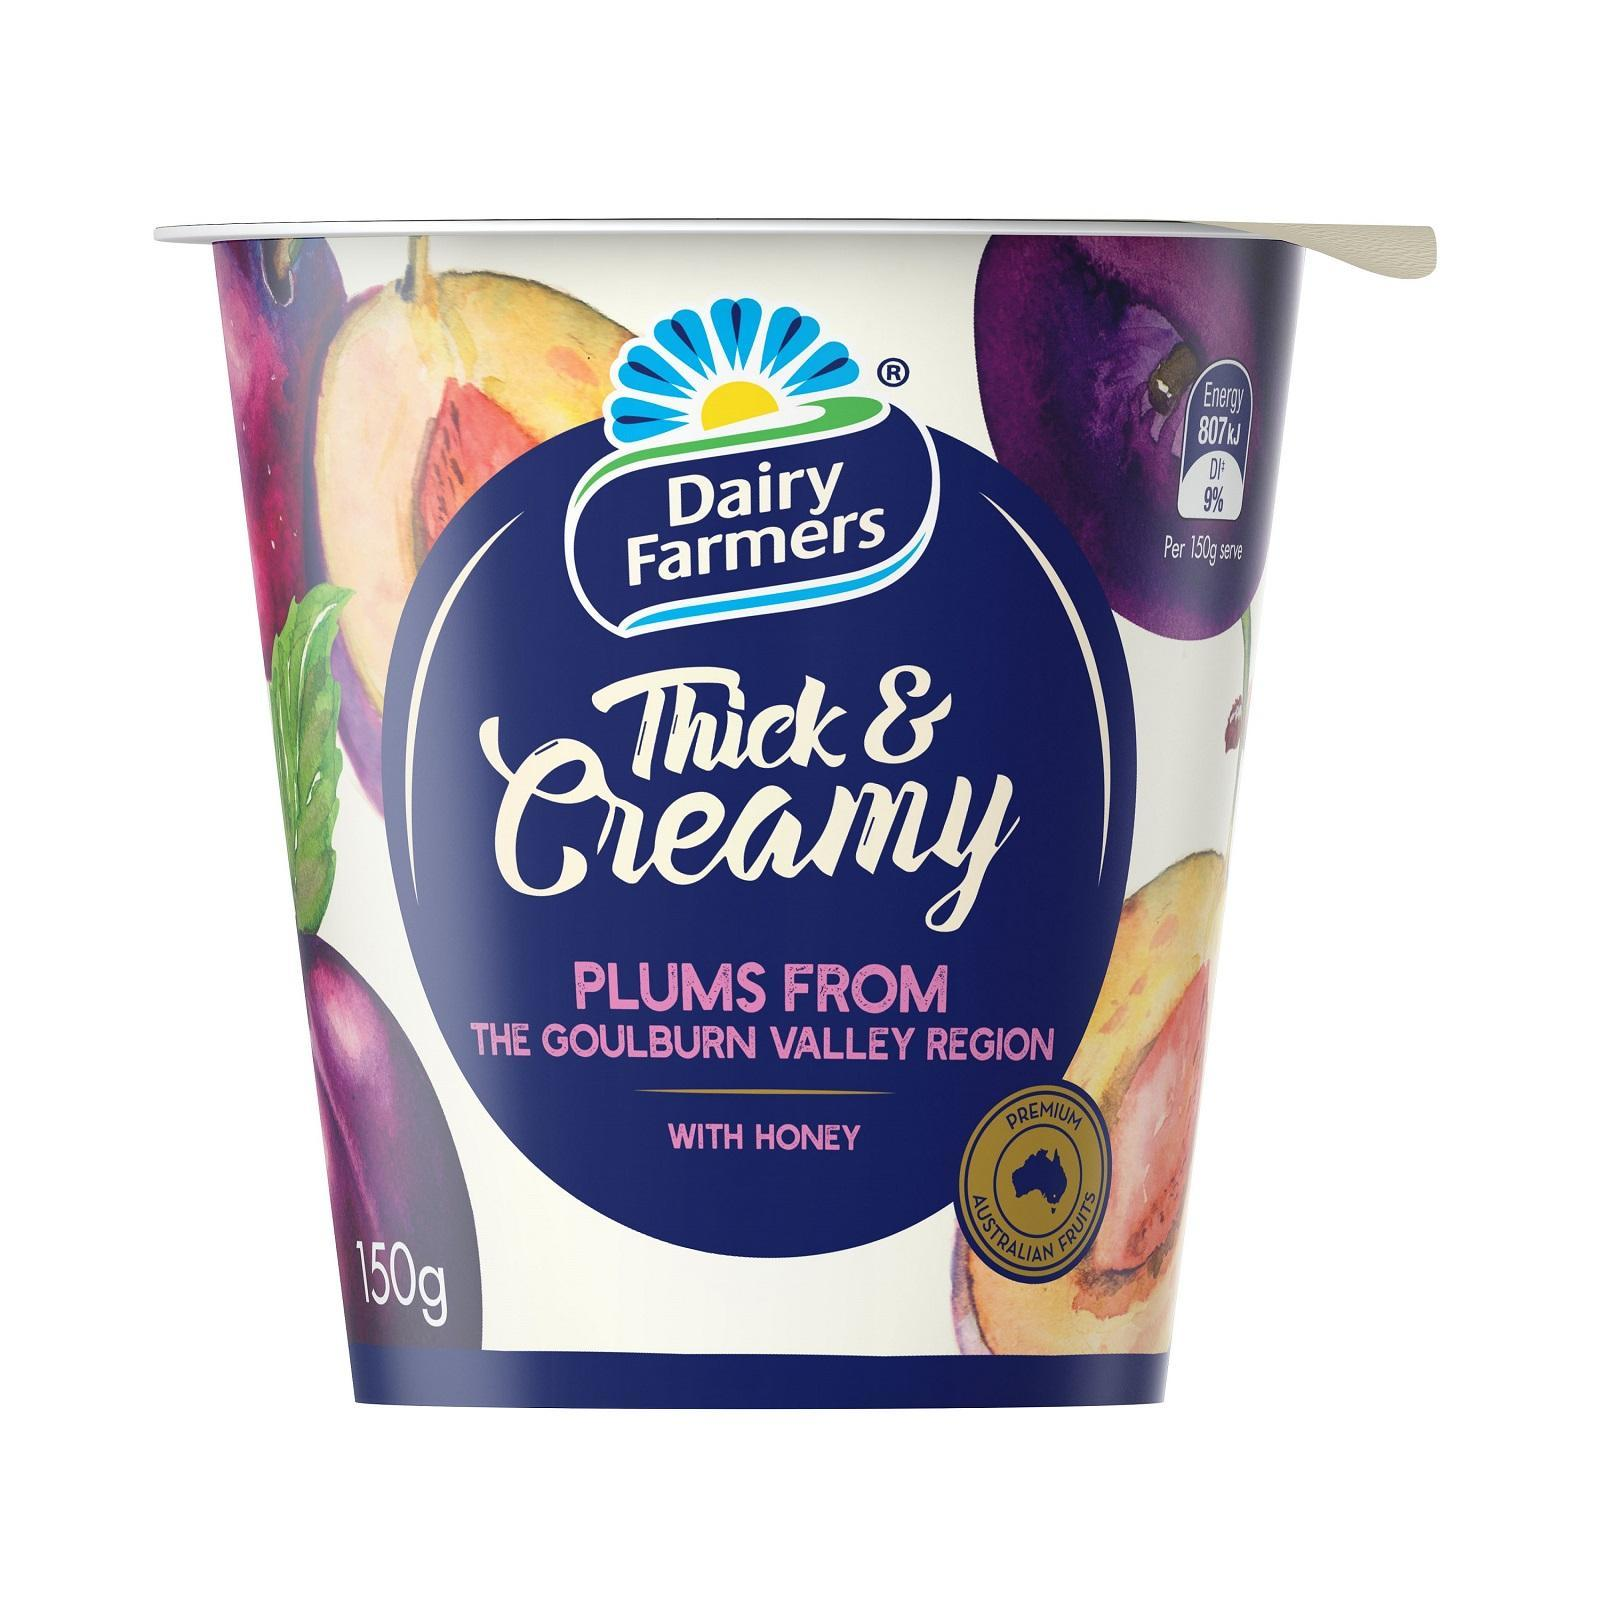 Dairy Farmers Thick And Creamy Yellow Box Honey Yoghurt